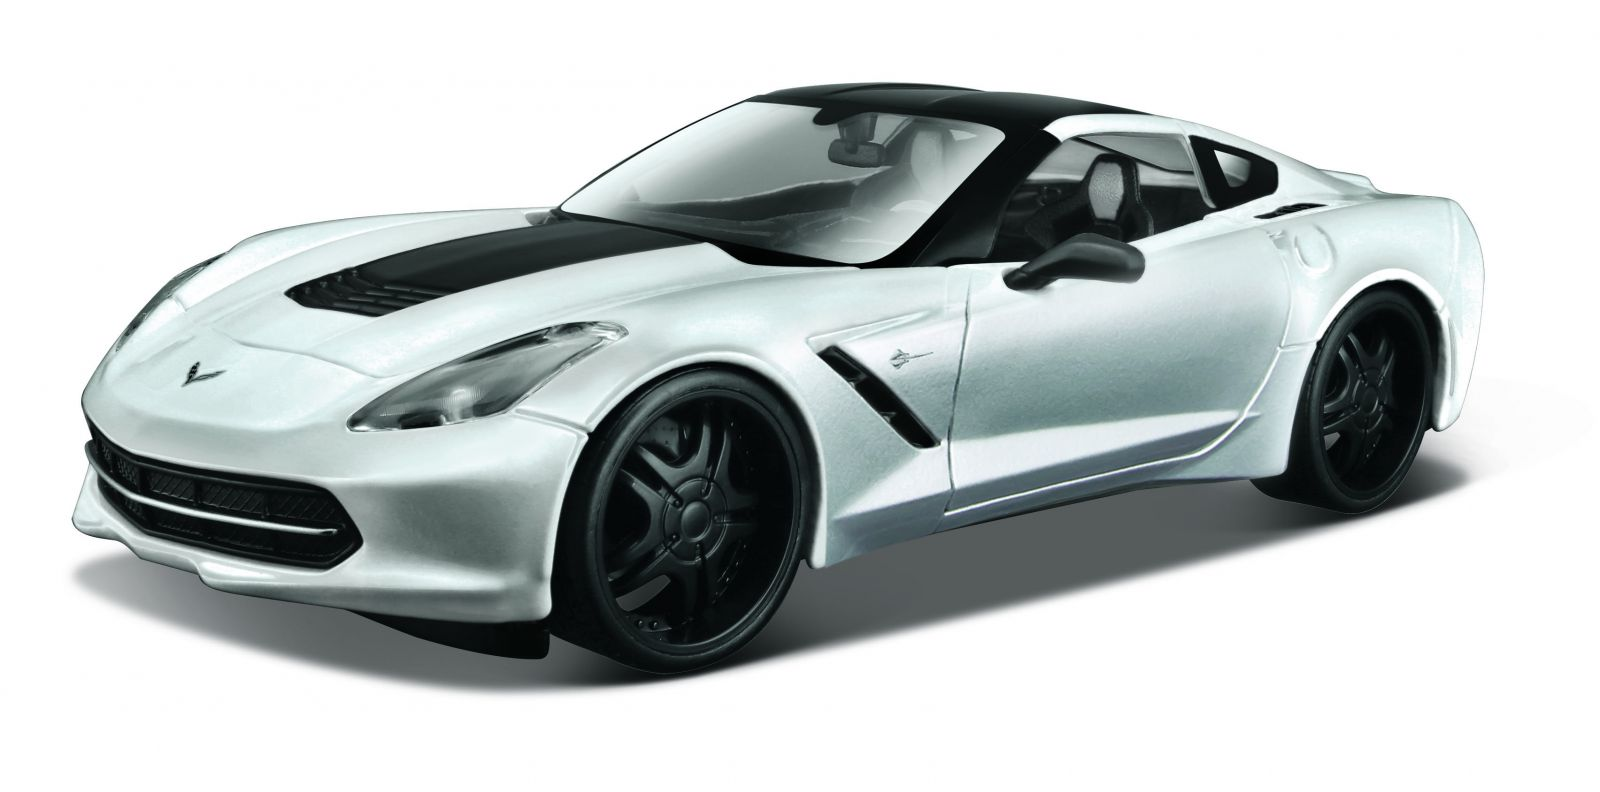 auto Maisto 1:24 Design - Corvette Stingray 2014 - stříbrná